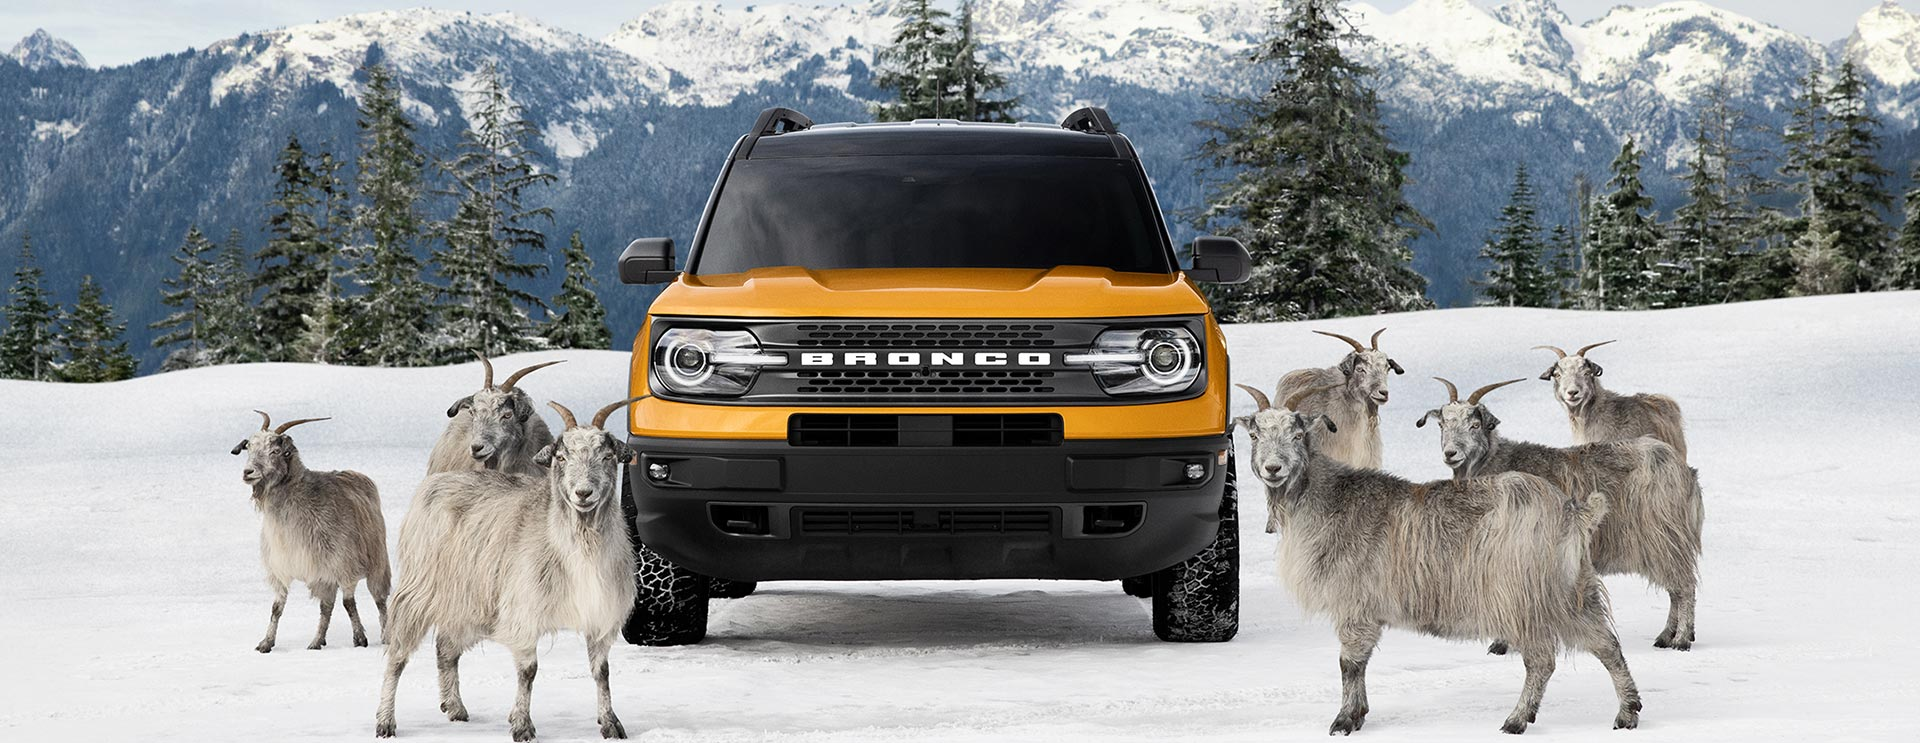 Bronco Sport: Raised by Goats